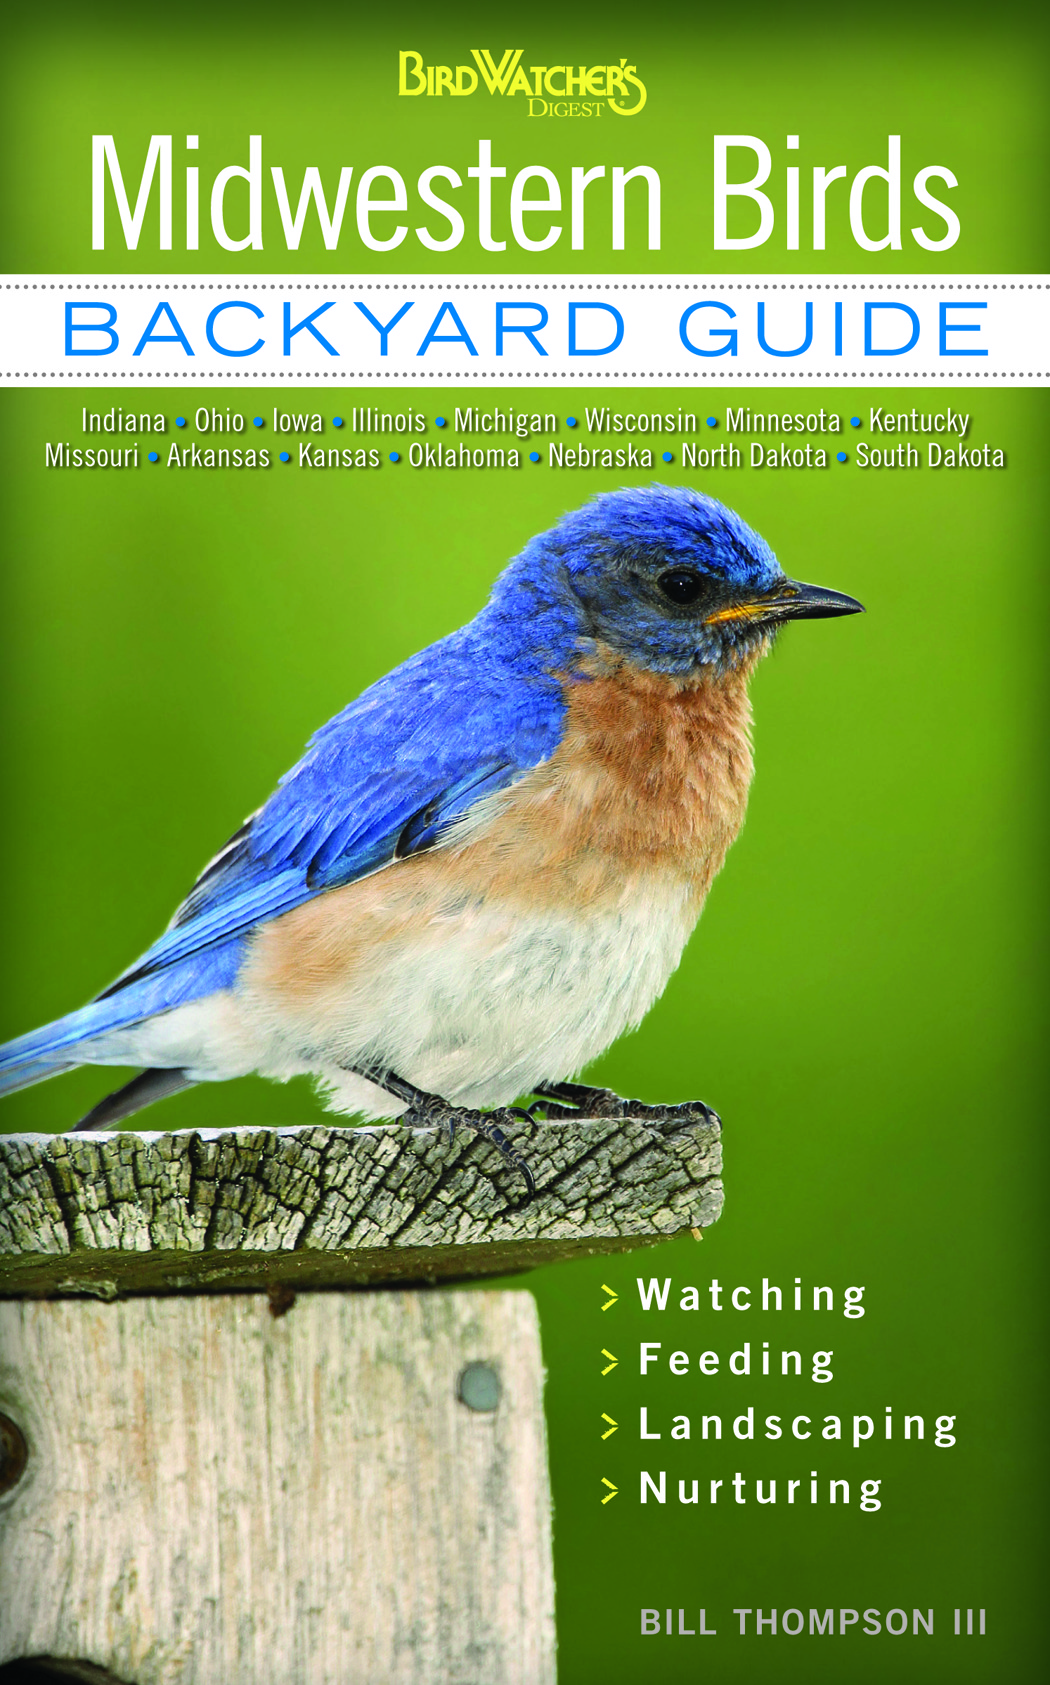 Backyard Birding: Two Great Books For Those Who Enjoy Birds At Home